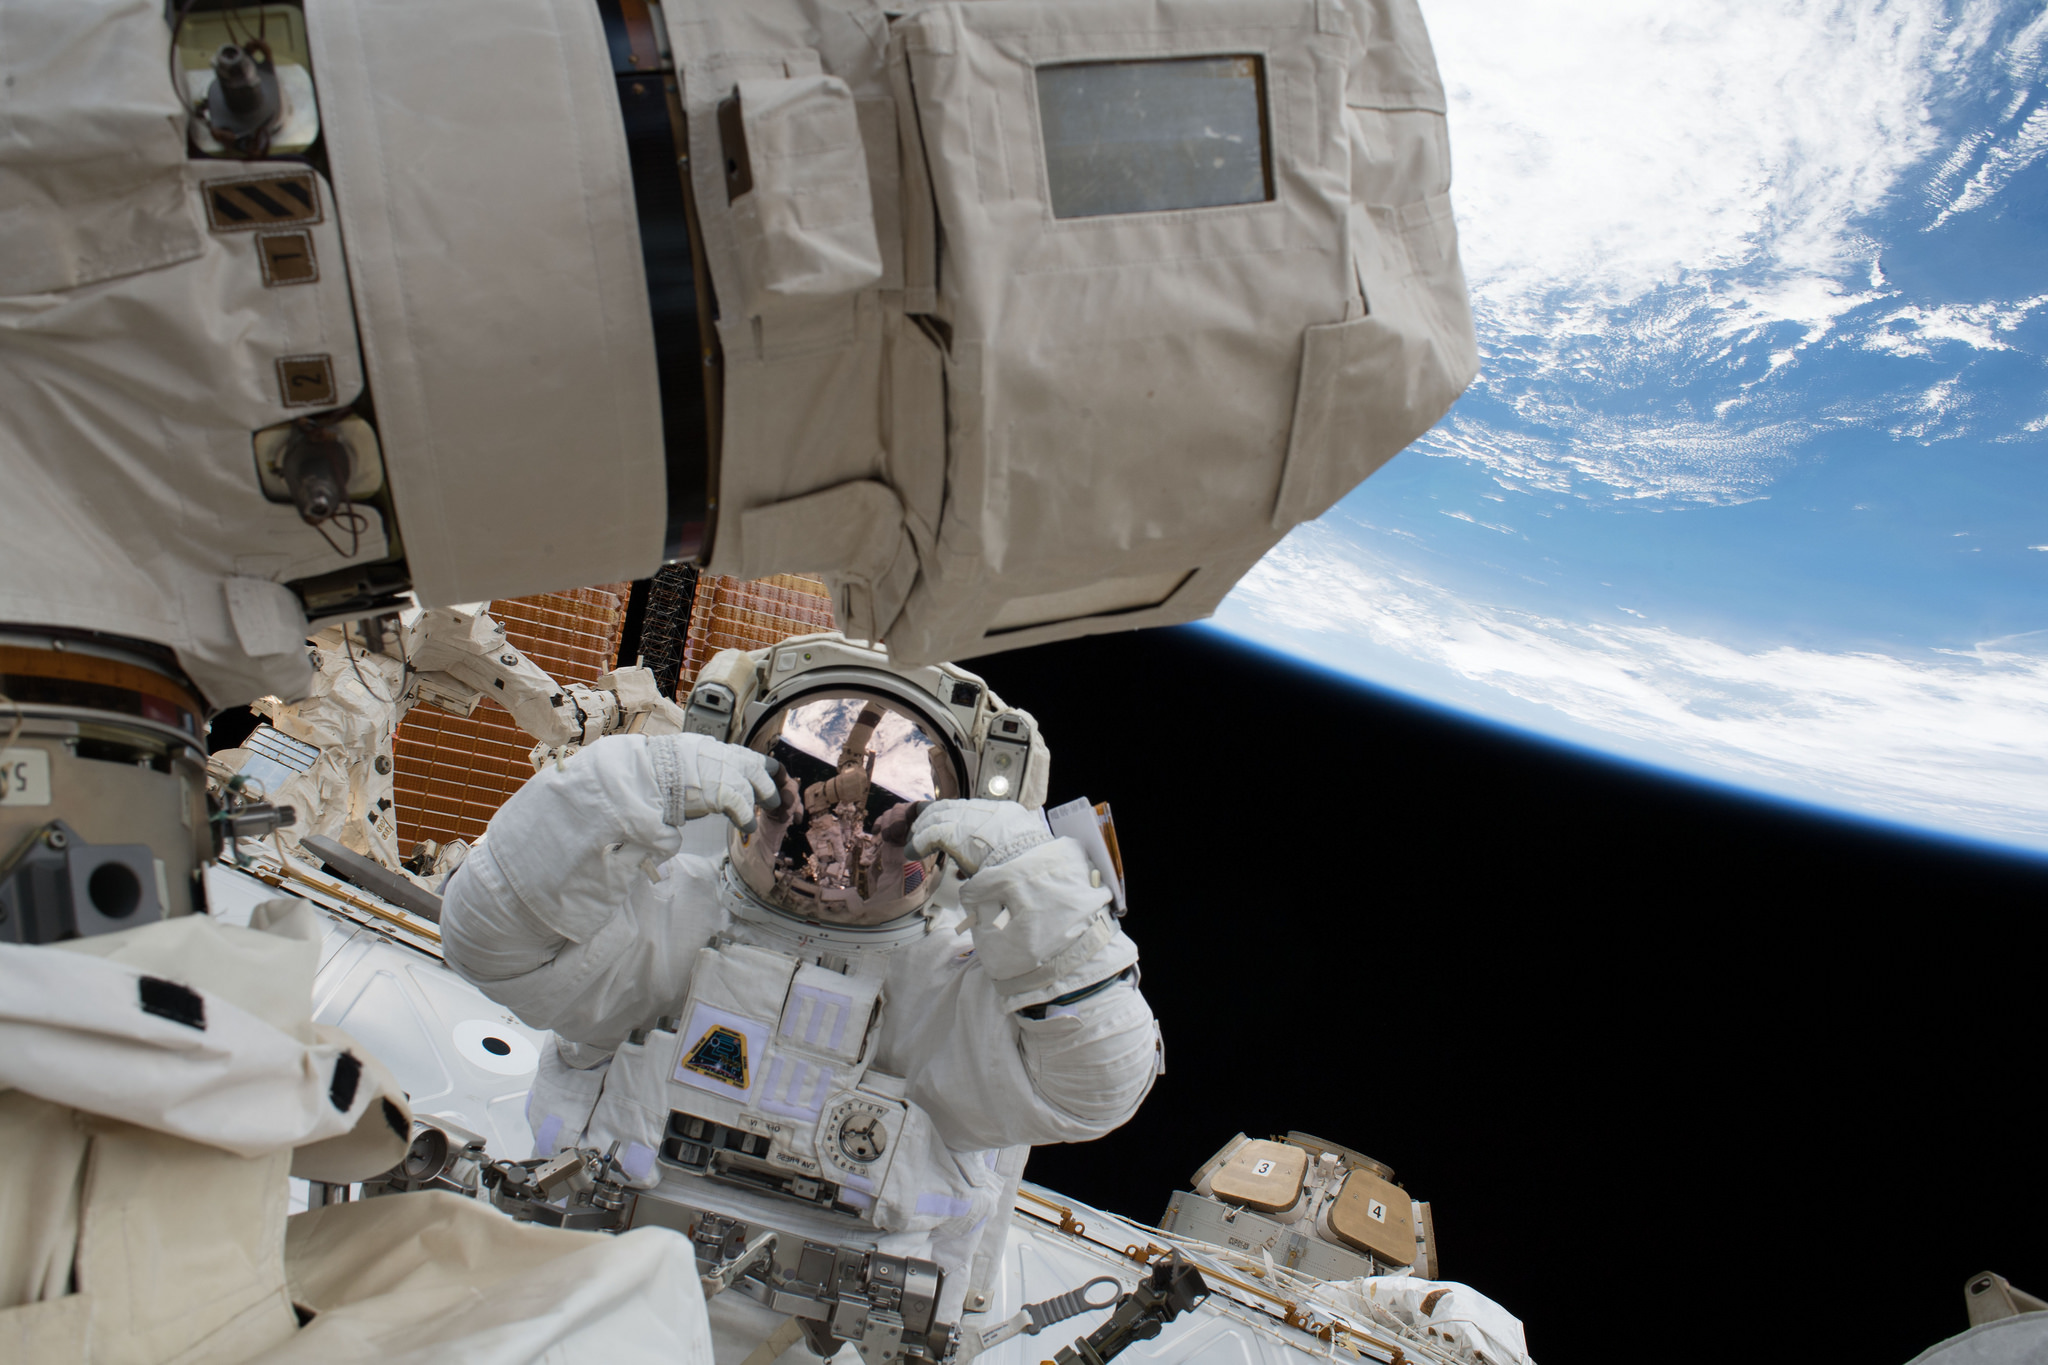 Scott Tingle, along with Mark Vande Hei, not pictured, work to swap out the old LEE-B during U.S. EVA-47. Credit: NASA